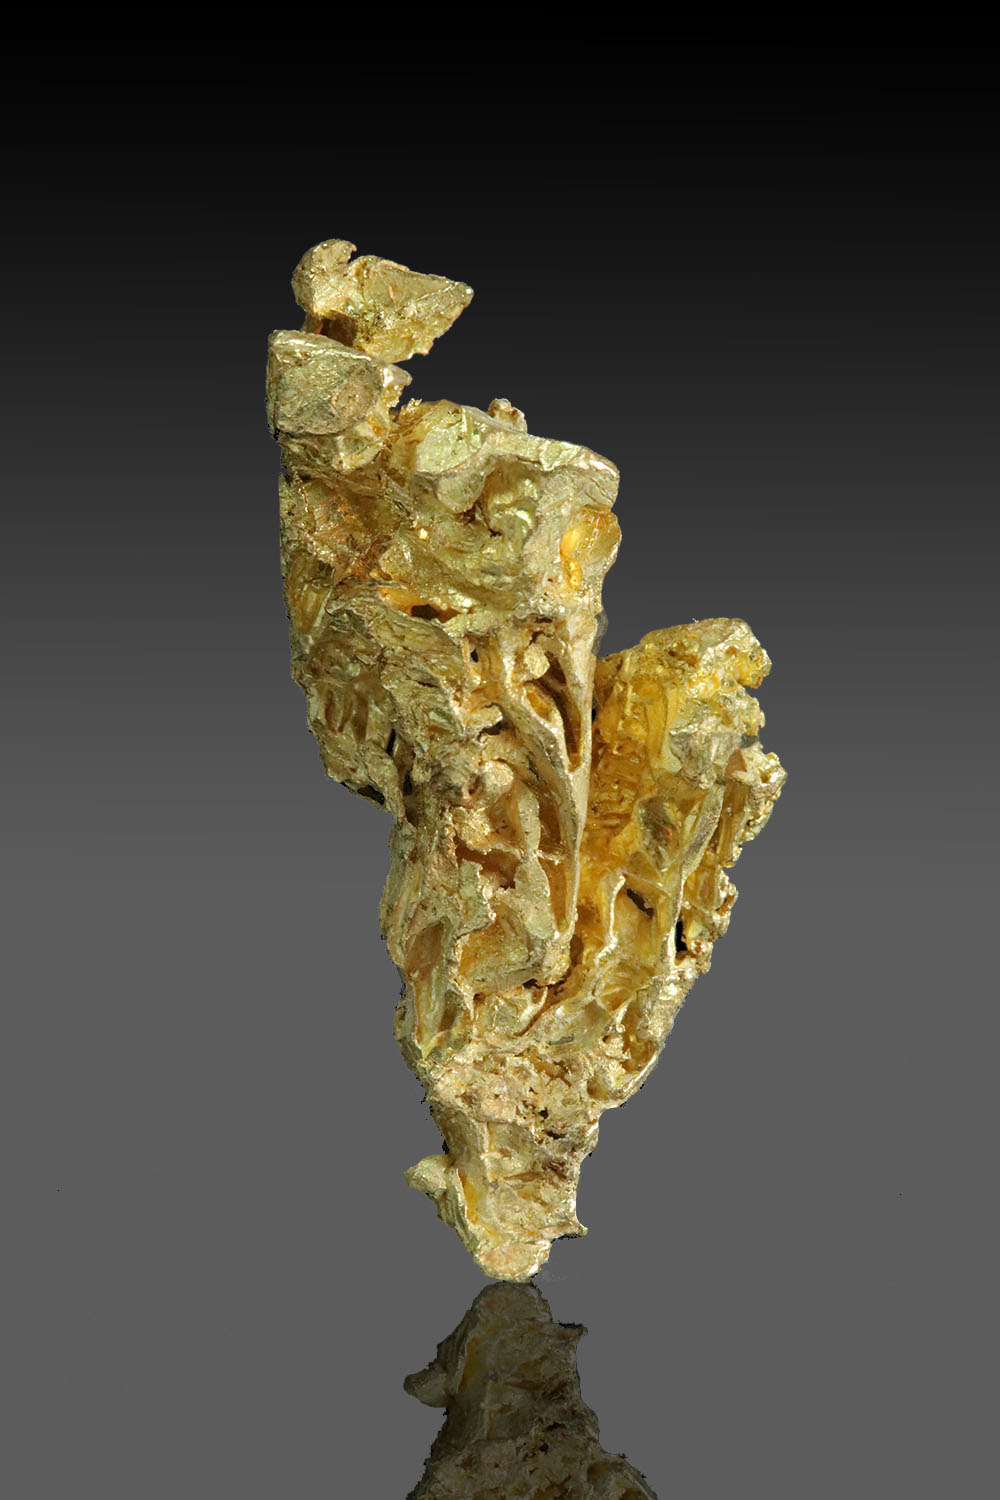 Long and Tapered - Brilliant gold crystal from the yukon